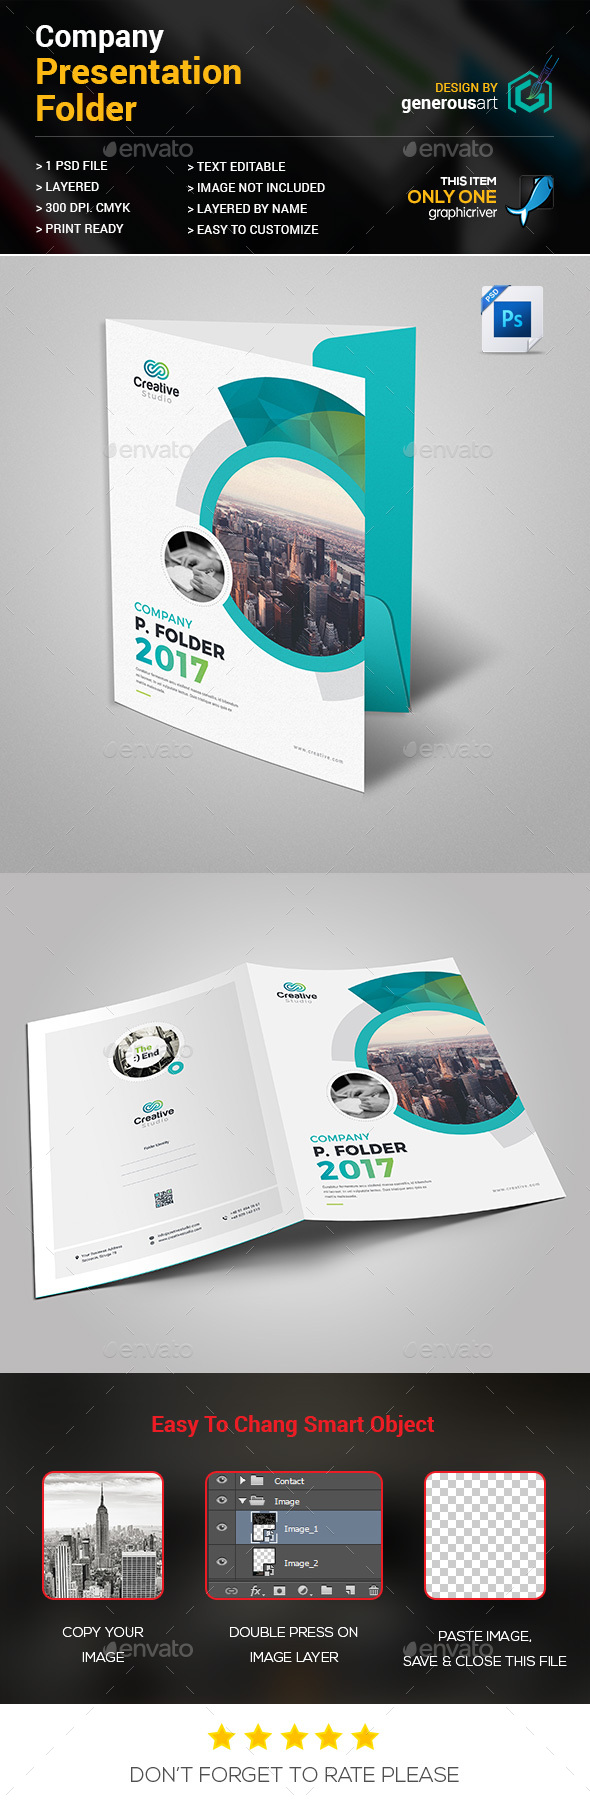 Company Presentation Folder - Stationery Print Templates